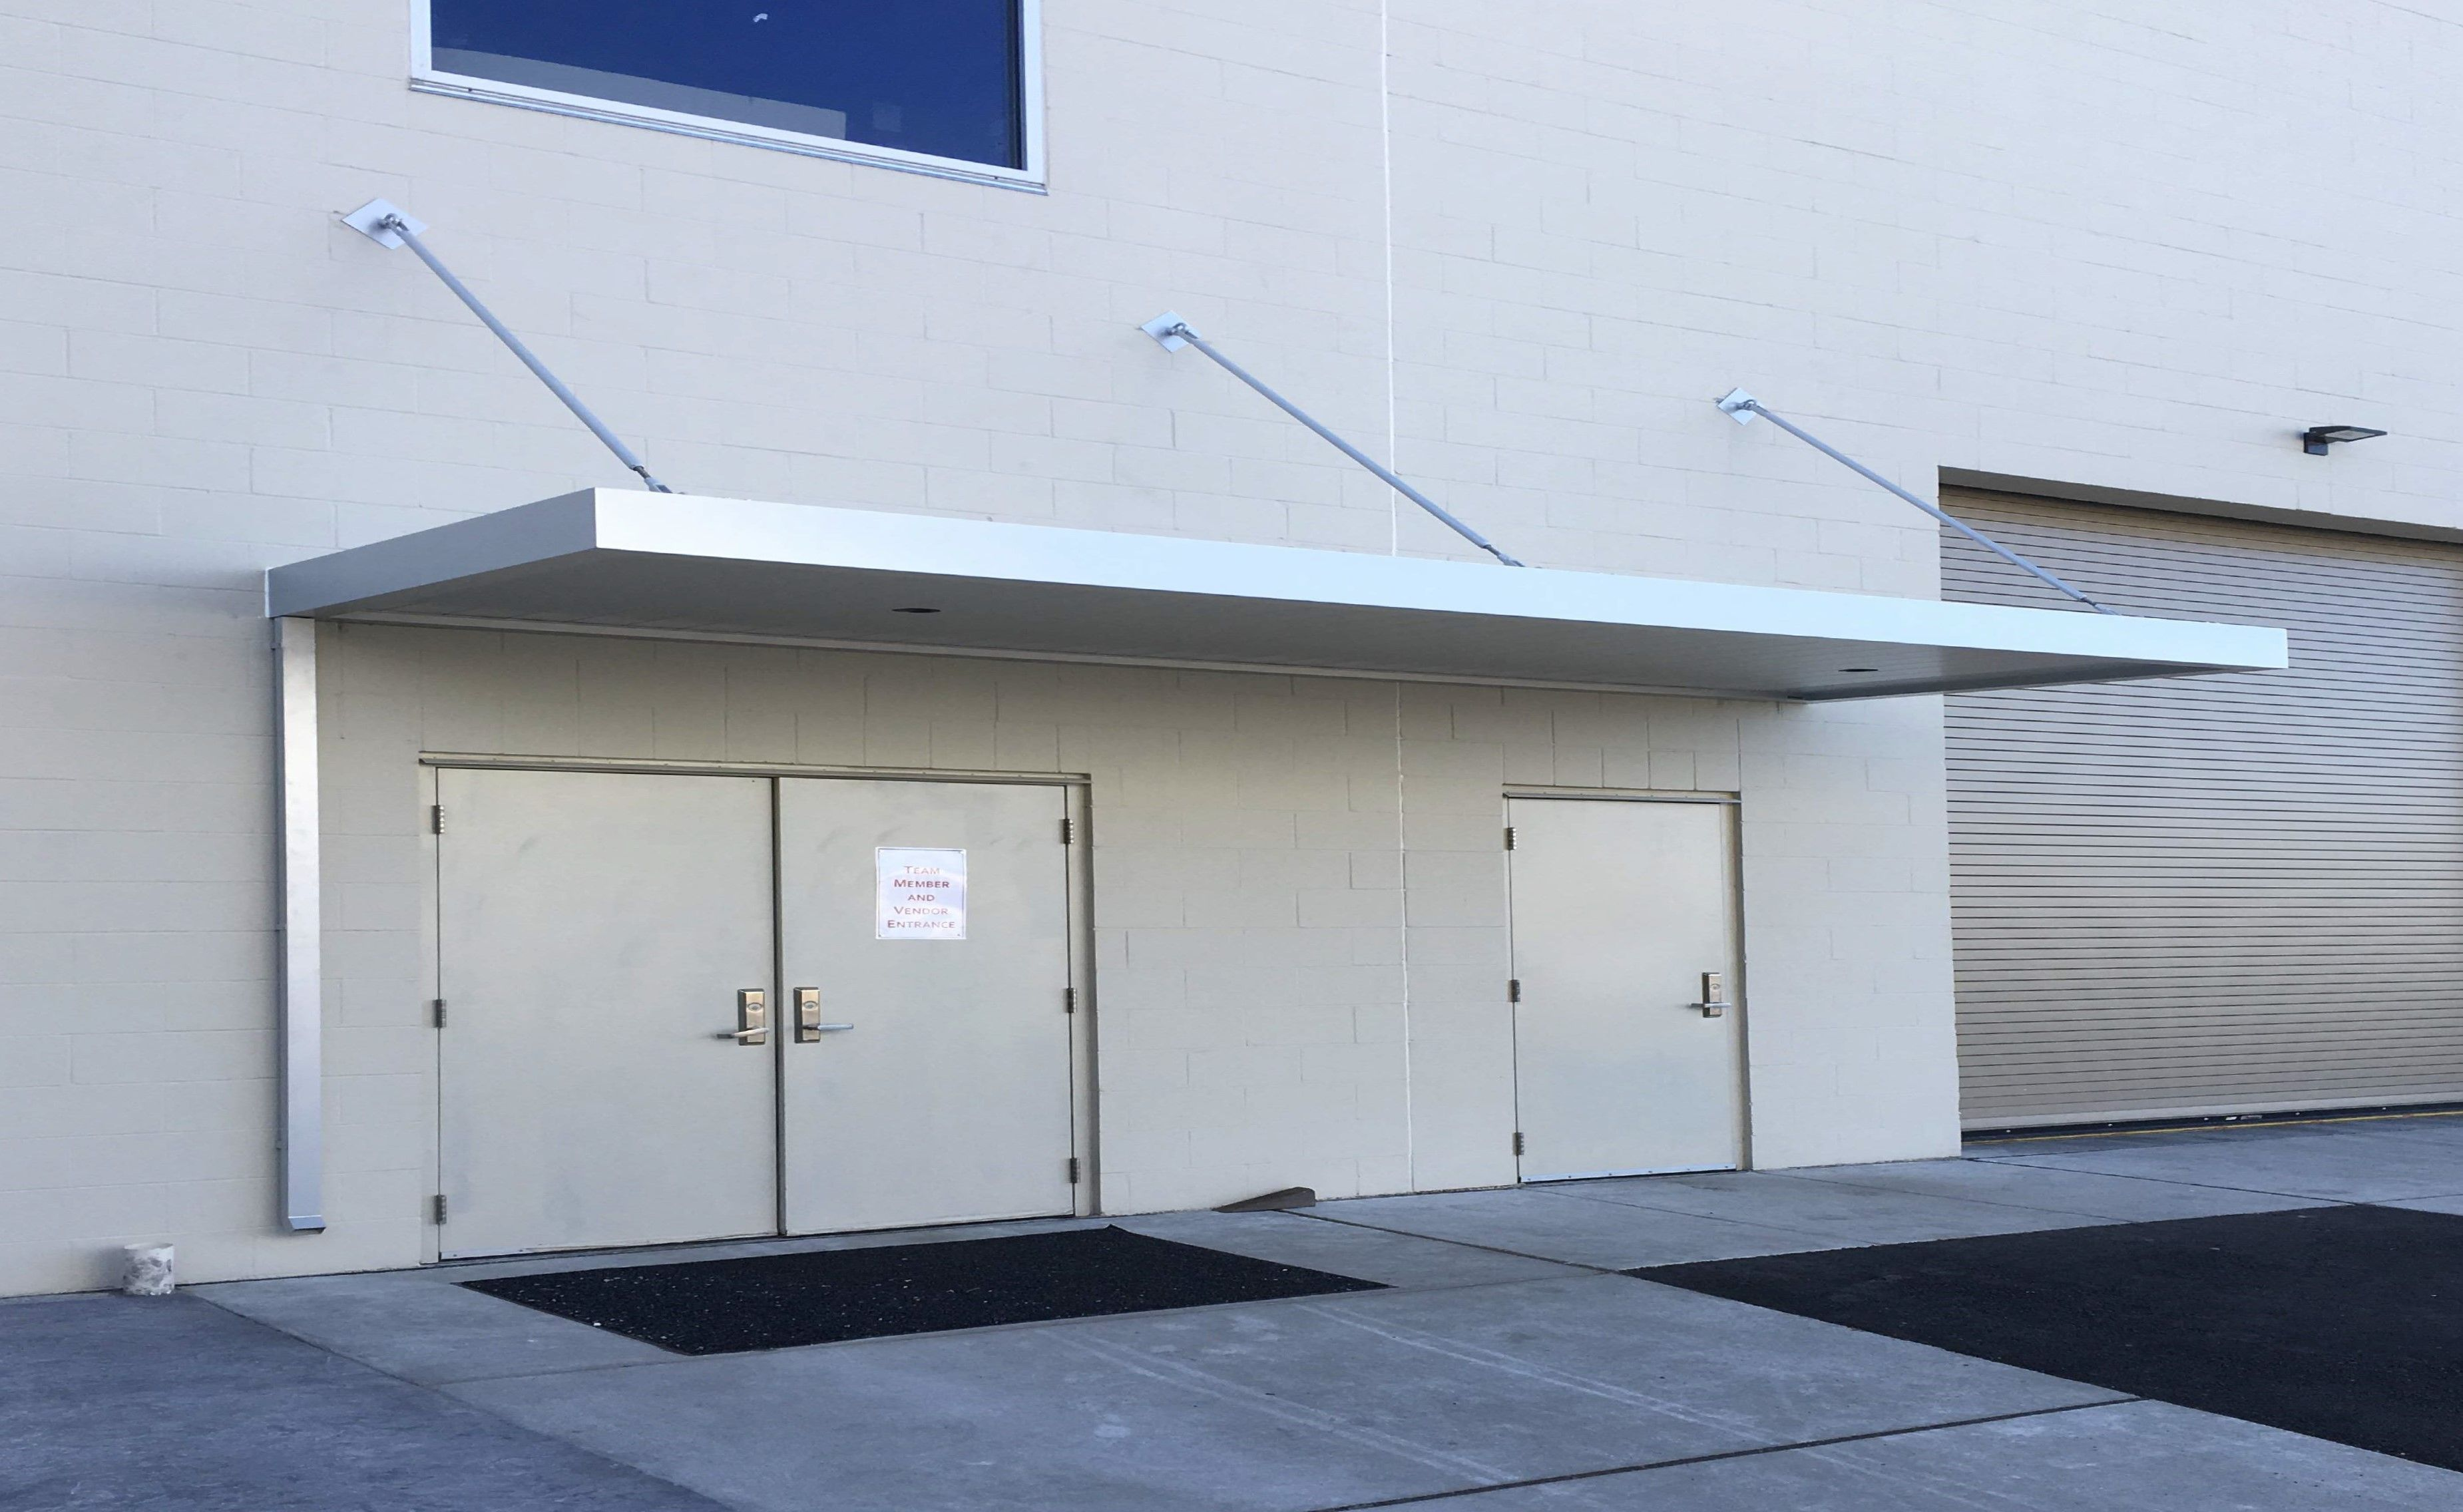 Masa Extrudeck Canopy With Lights And Downspout At Swinomish Casino In Anacortes Wa Architecture Design Metal Madeinam Custom Canopy Awning Canopy Canopy